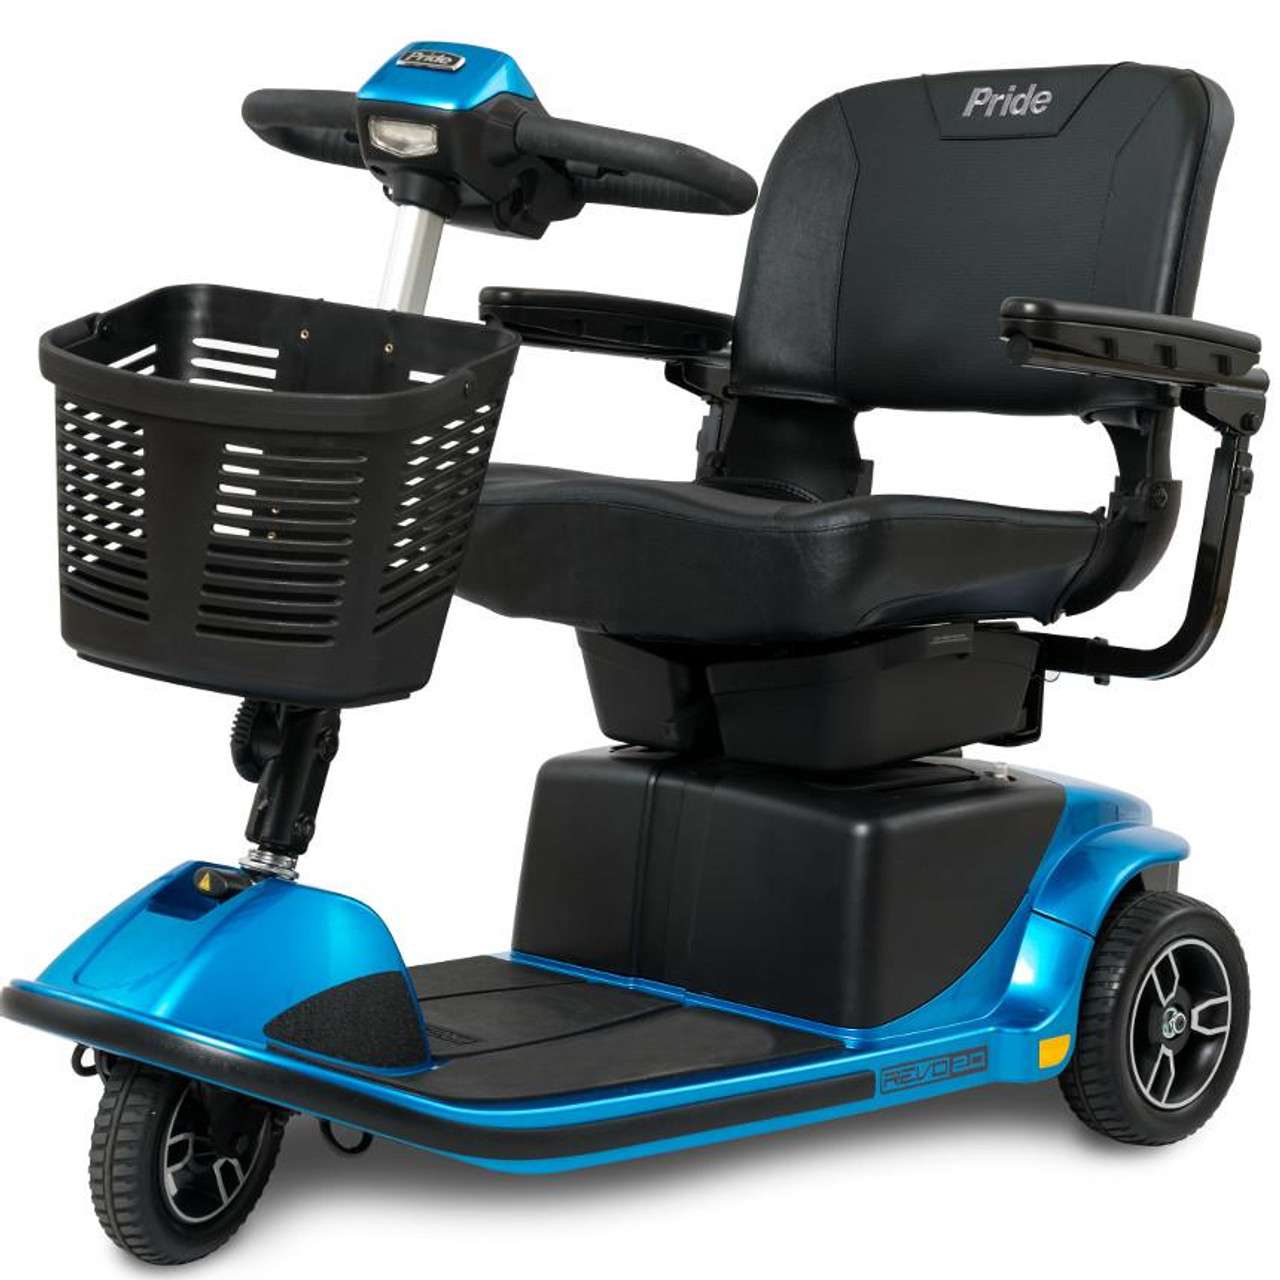 Revo 2.0 3-Wheel Scooter by Pride Mobility